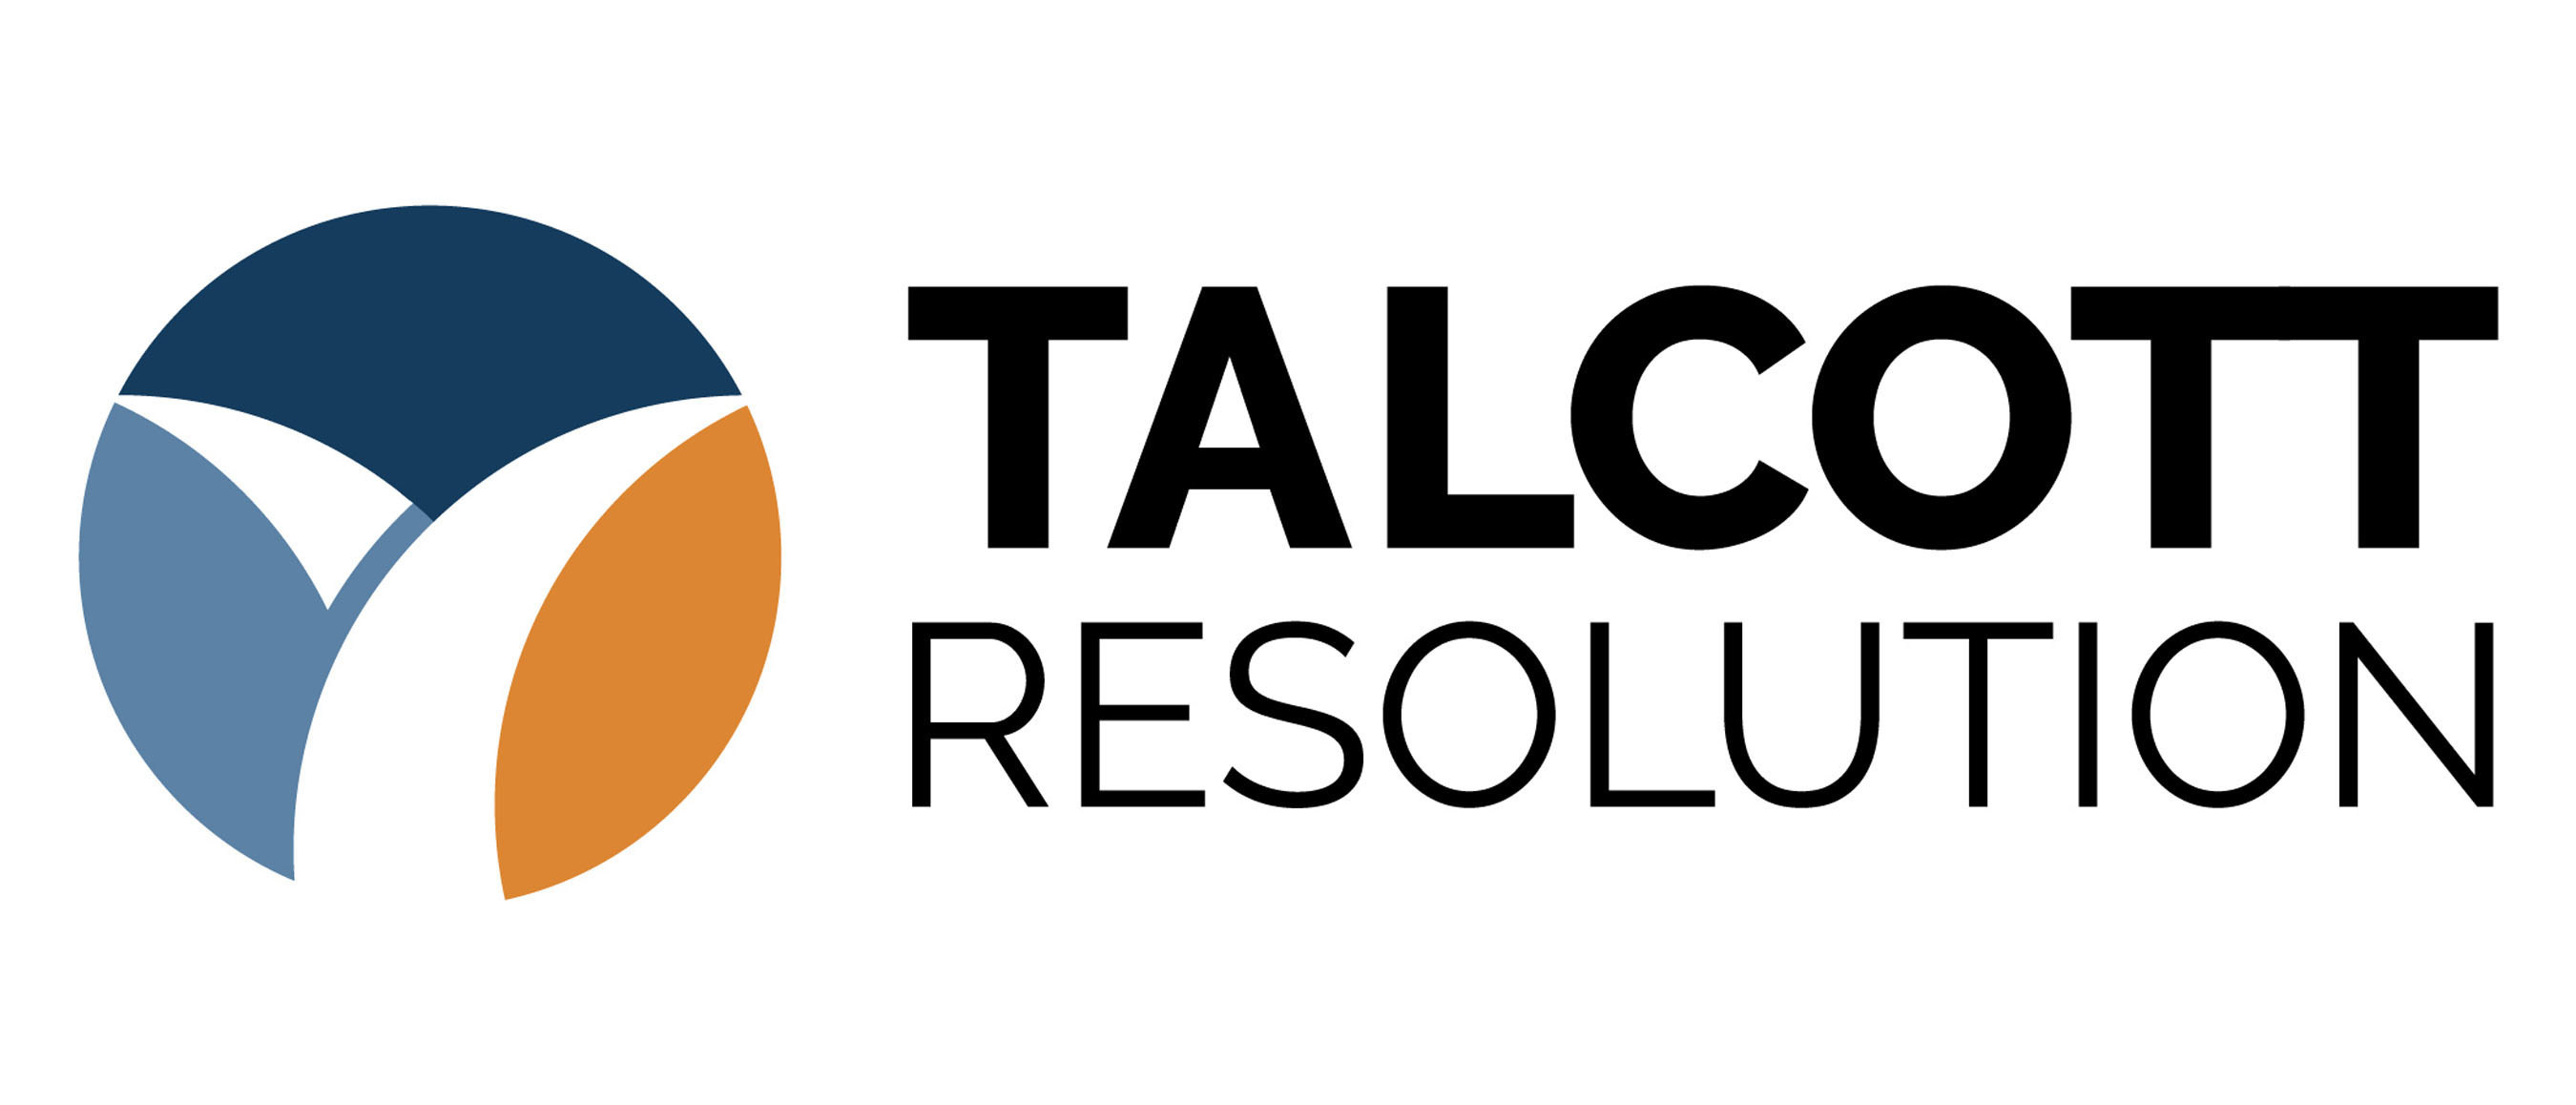 Hartford Annuity Login >> Investor Group Completes Acquisition Of Talcott Resolution From The